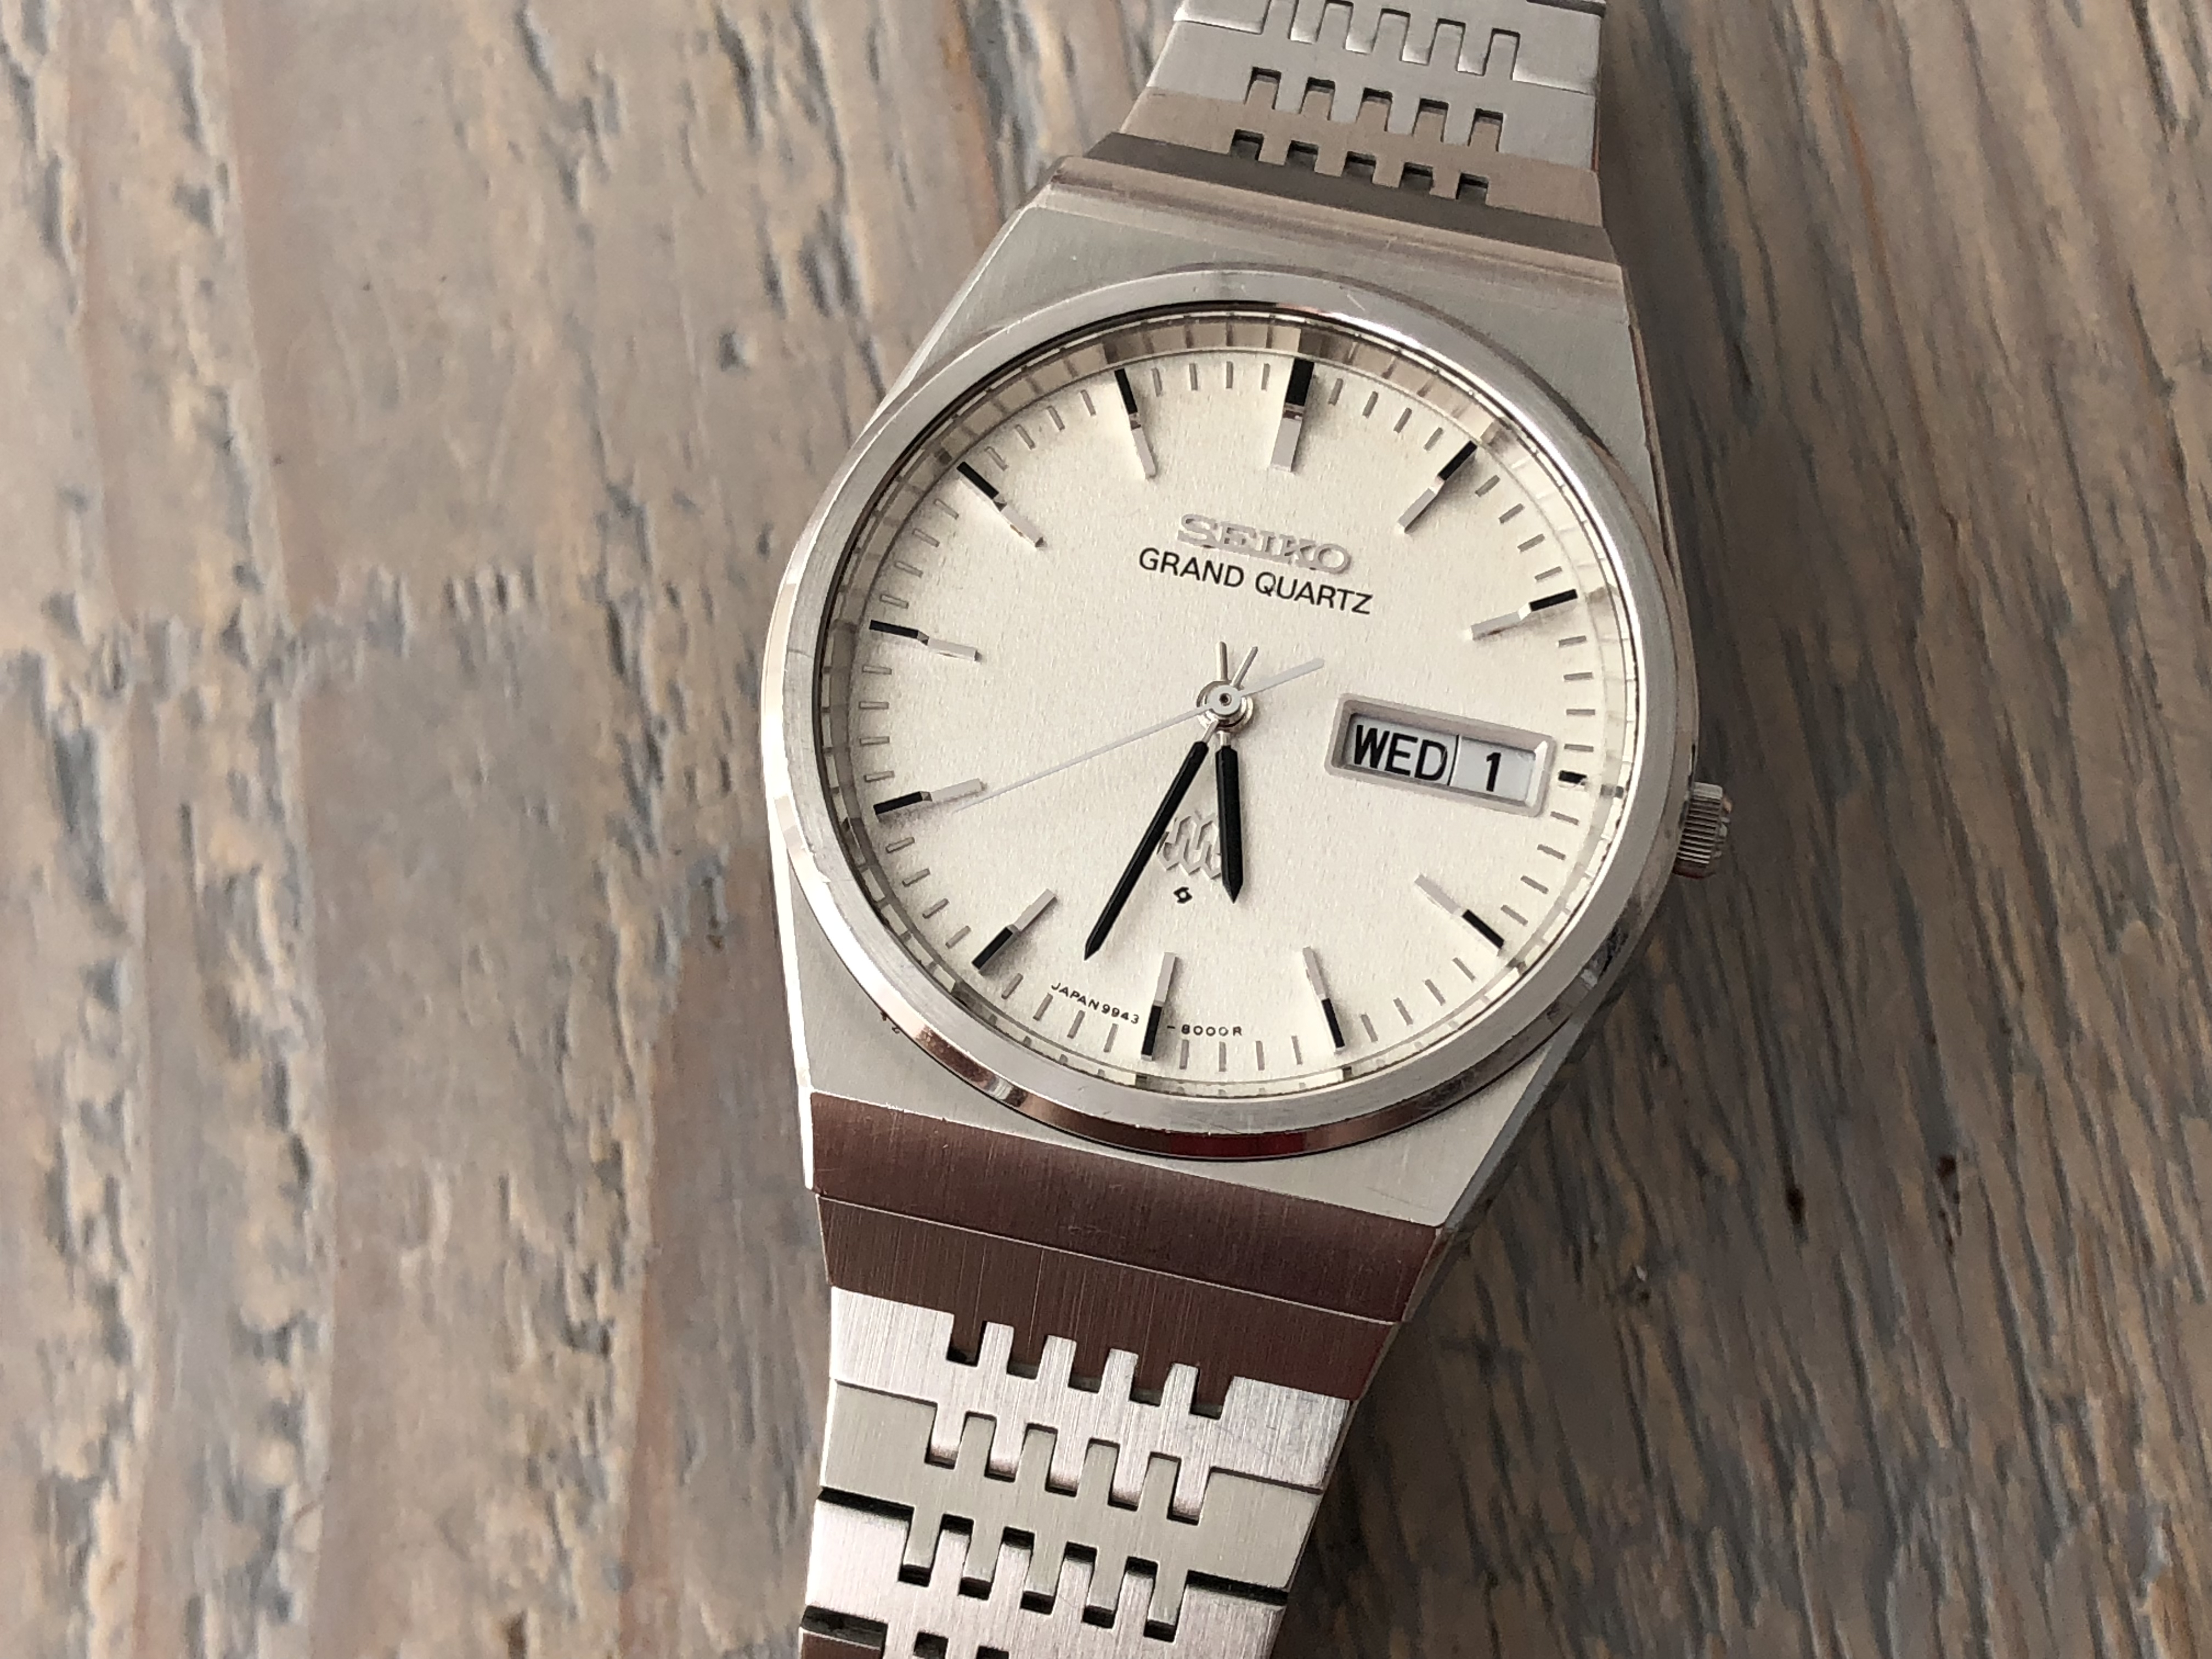 Seiko Grand Quartz 9943-8000 (Sold)